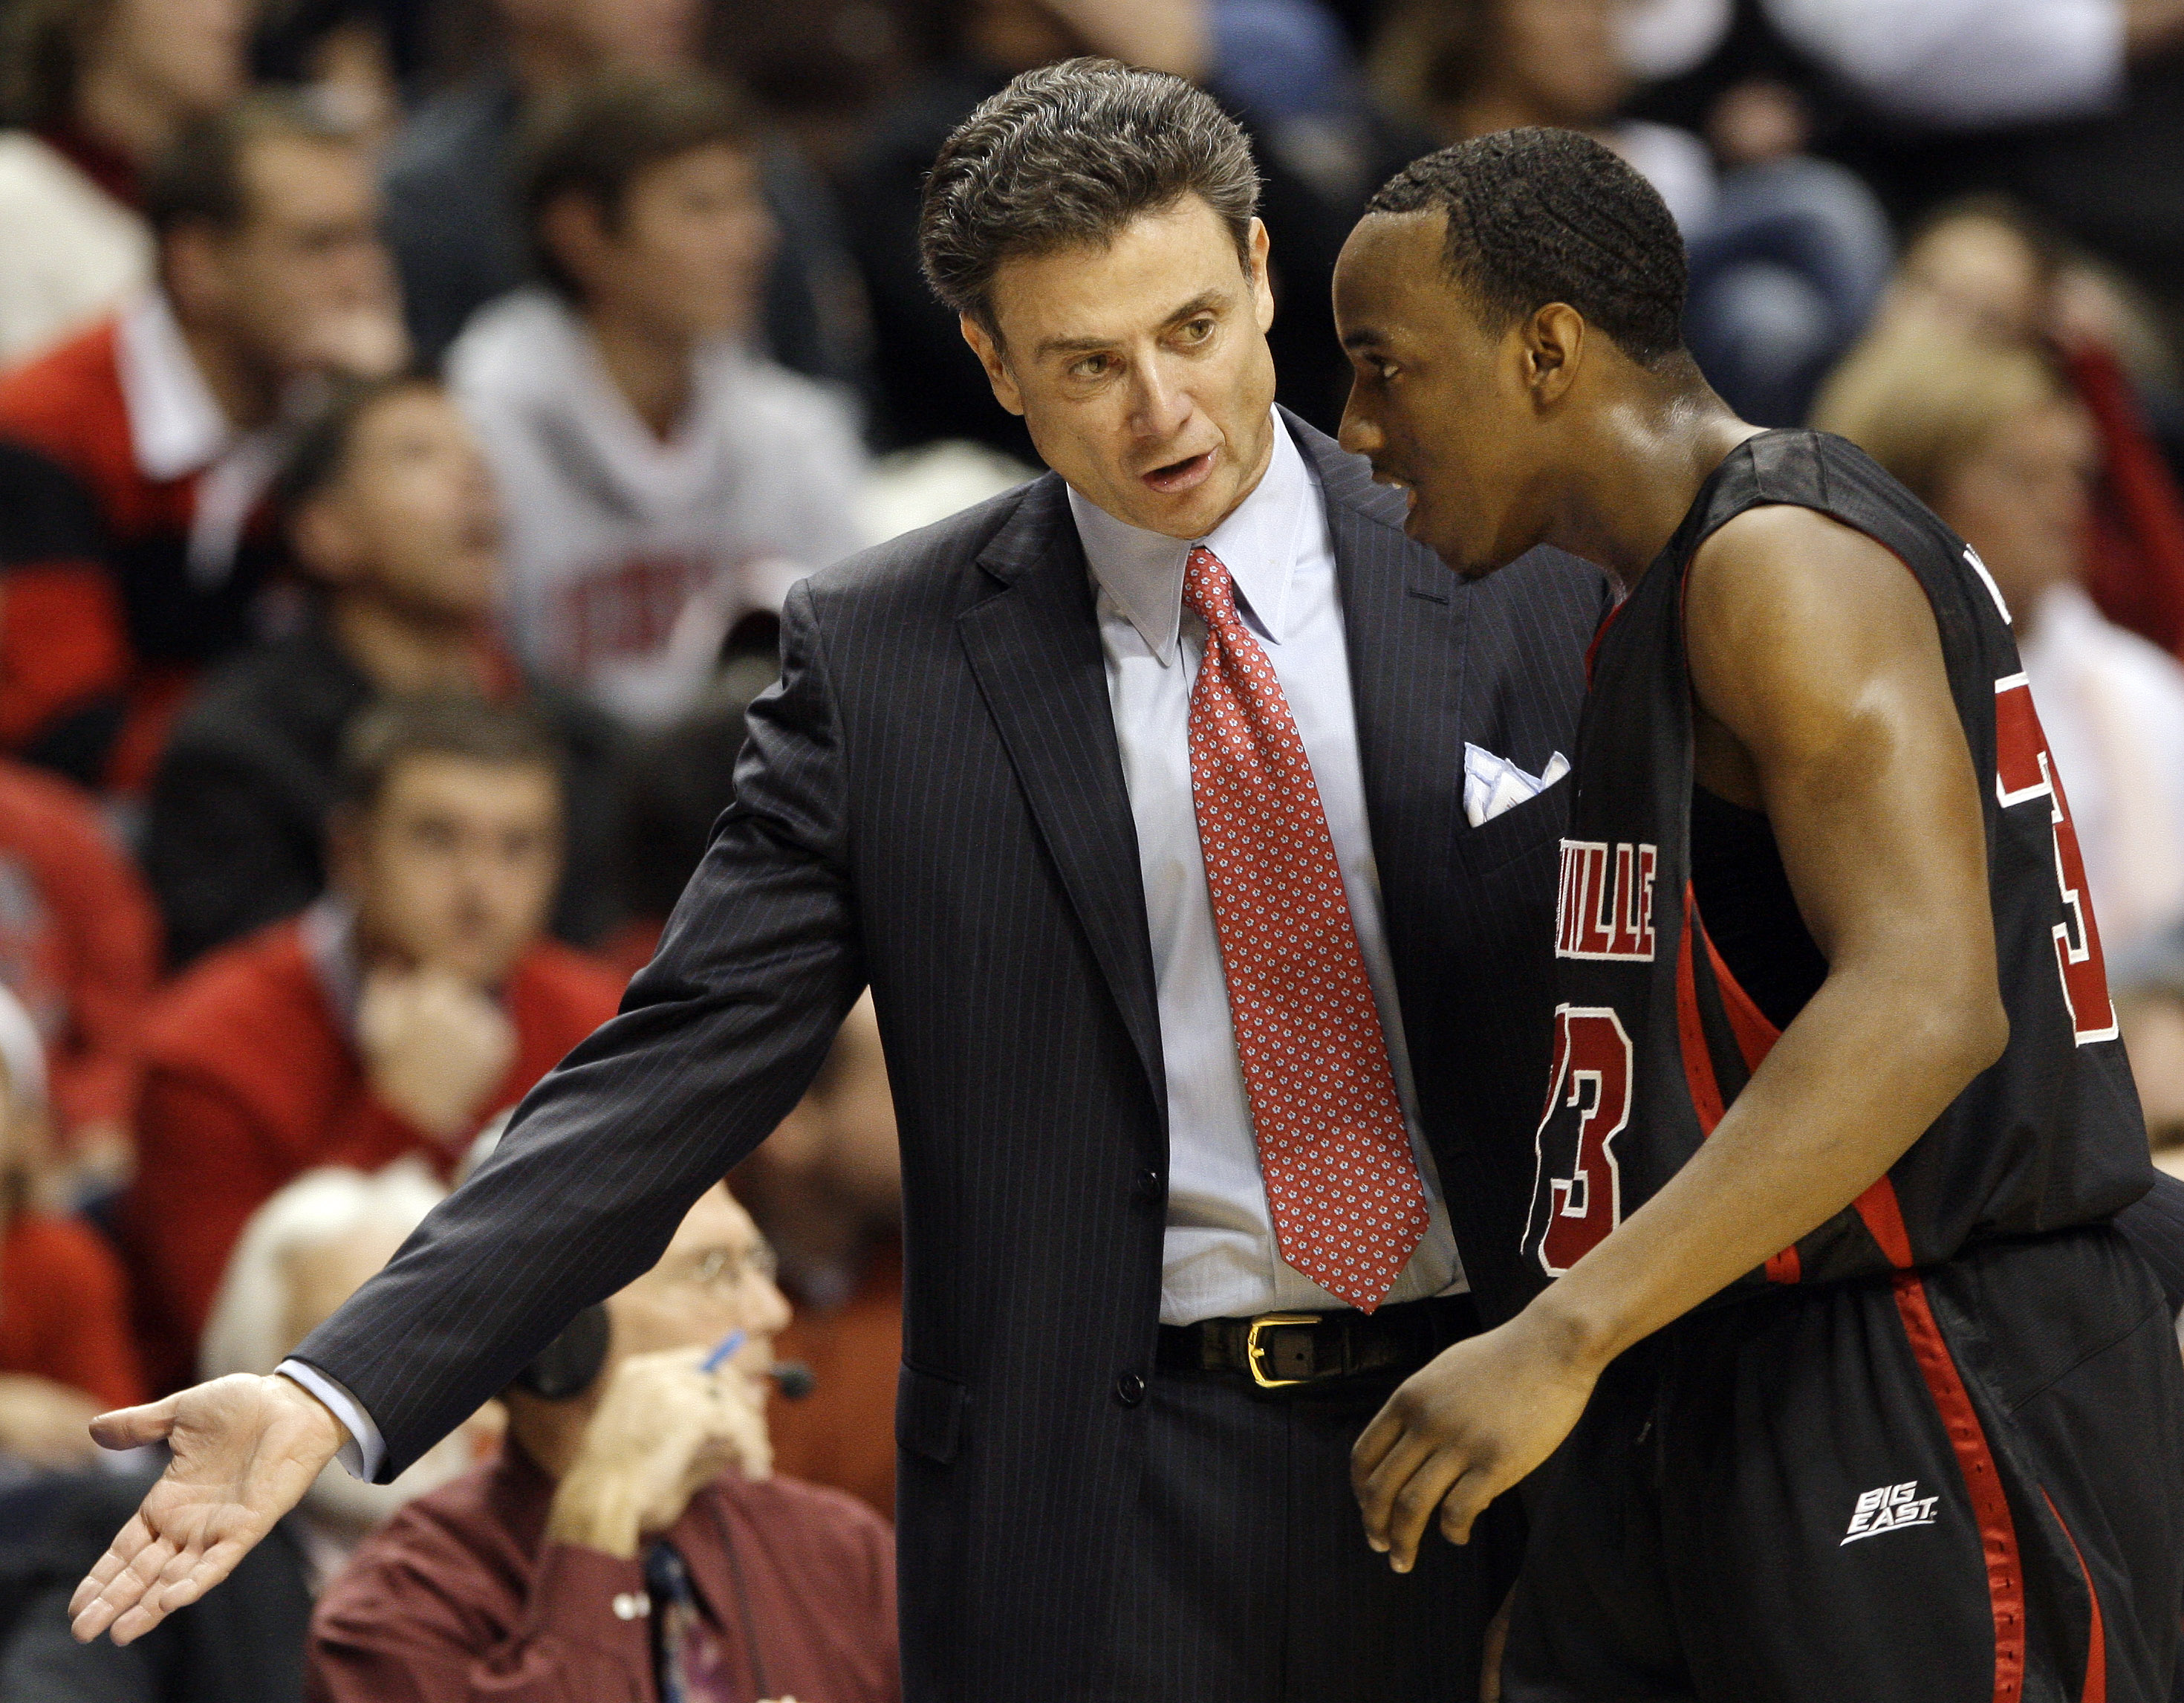 Louisville head coach Rick Pitino talks with guard Andre McGee, right, in the first half of an NCAA college basketball game against Western Kentucky in Nashville, Tenn., Sunday, Nov. 30, 2008. Western Kentucky upset Louisville 68-54. (AP Photo/Mark  Humph